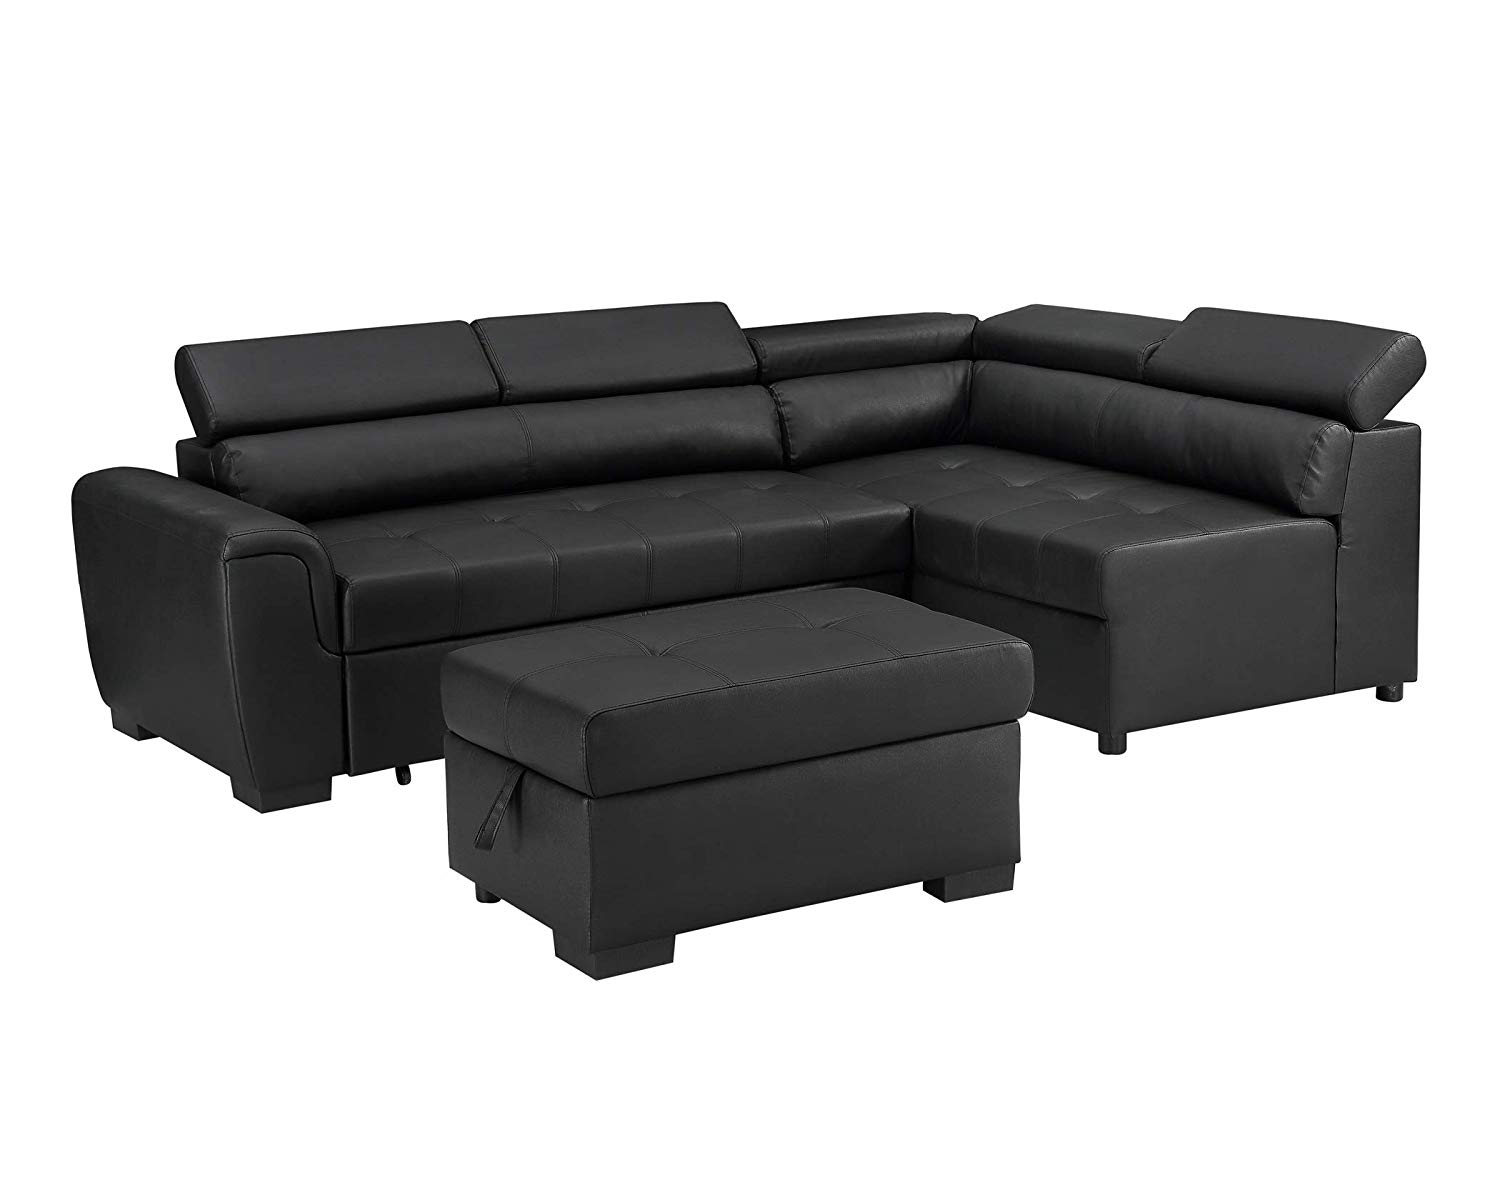 Fabulous Cheap Leather Chaise Sofa Bed Find Leather Chaise Sofa Bed Pabps2019 Chair Design Images Pabps2019Com